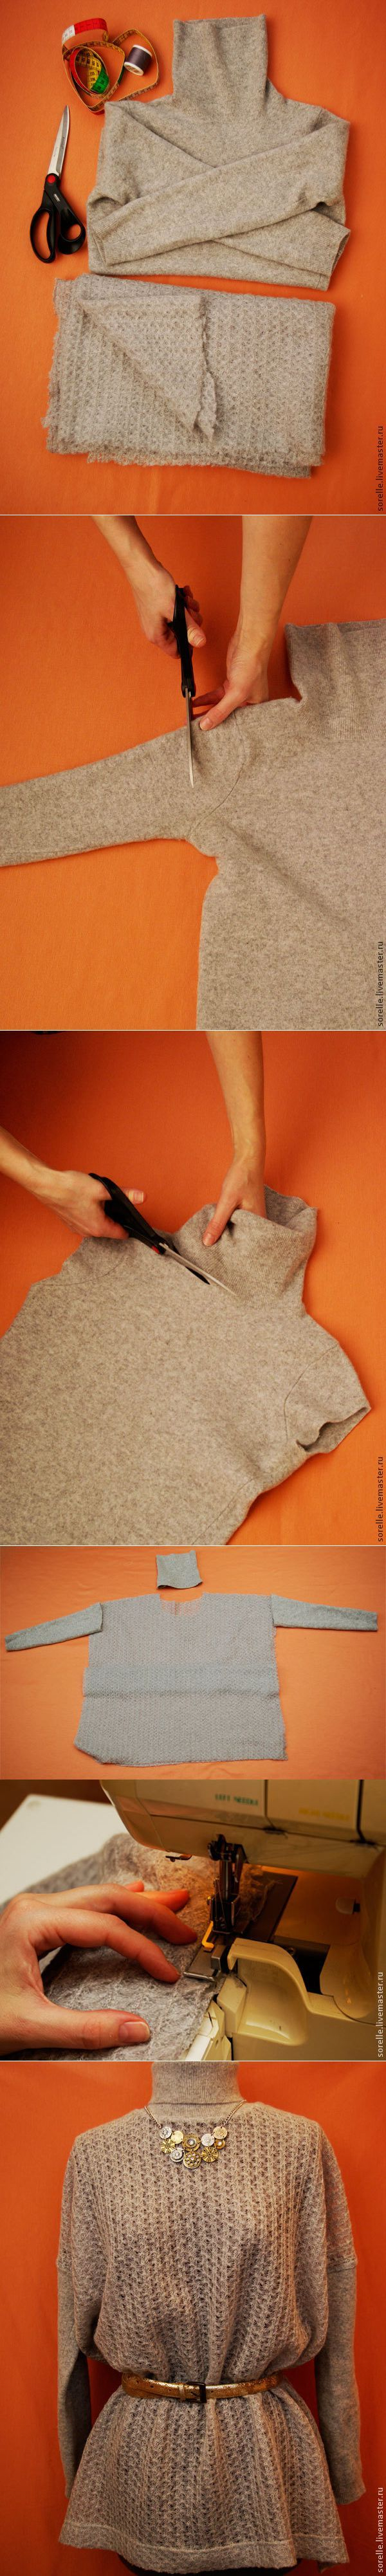 Remaking sweater into a stylish little thing |  Do it yourself!